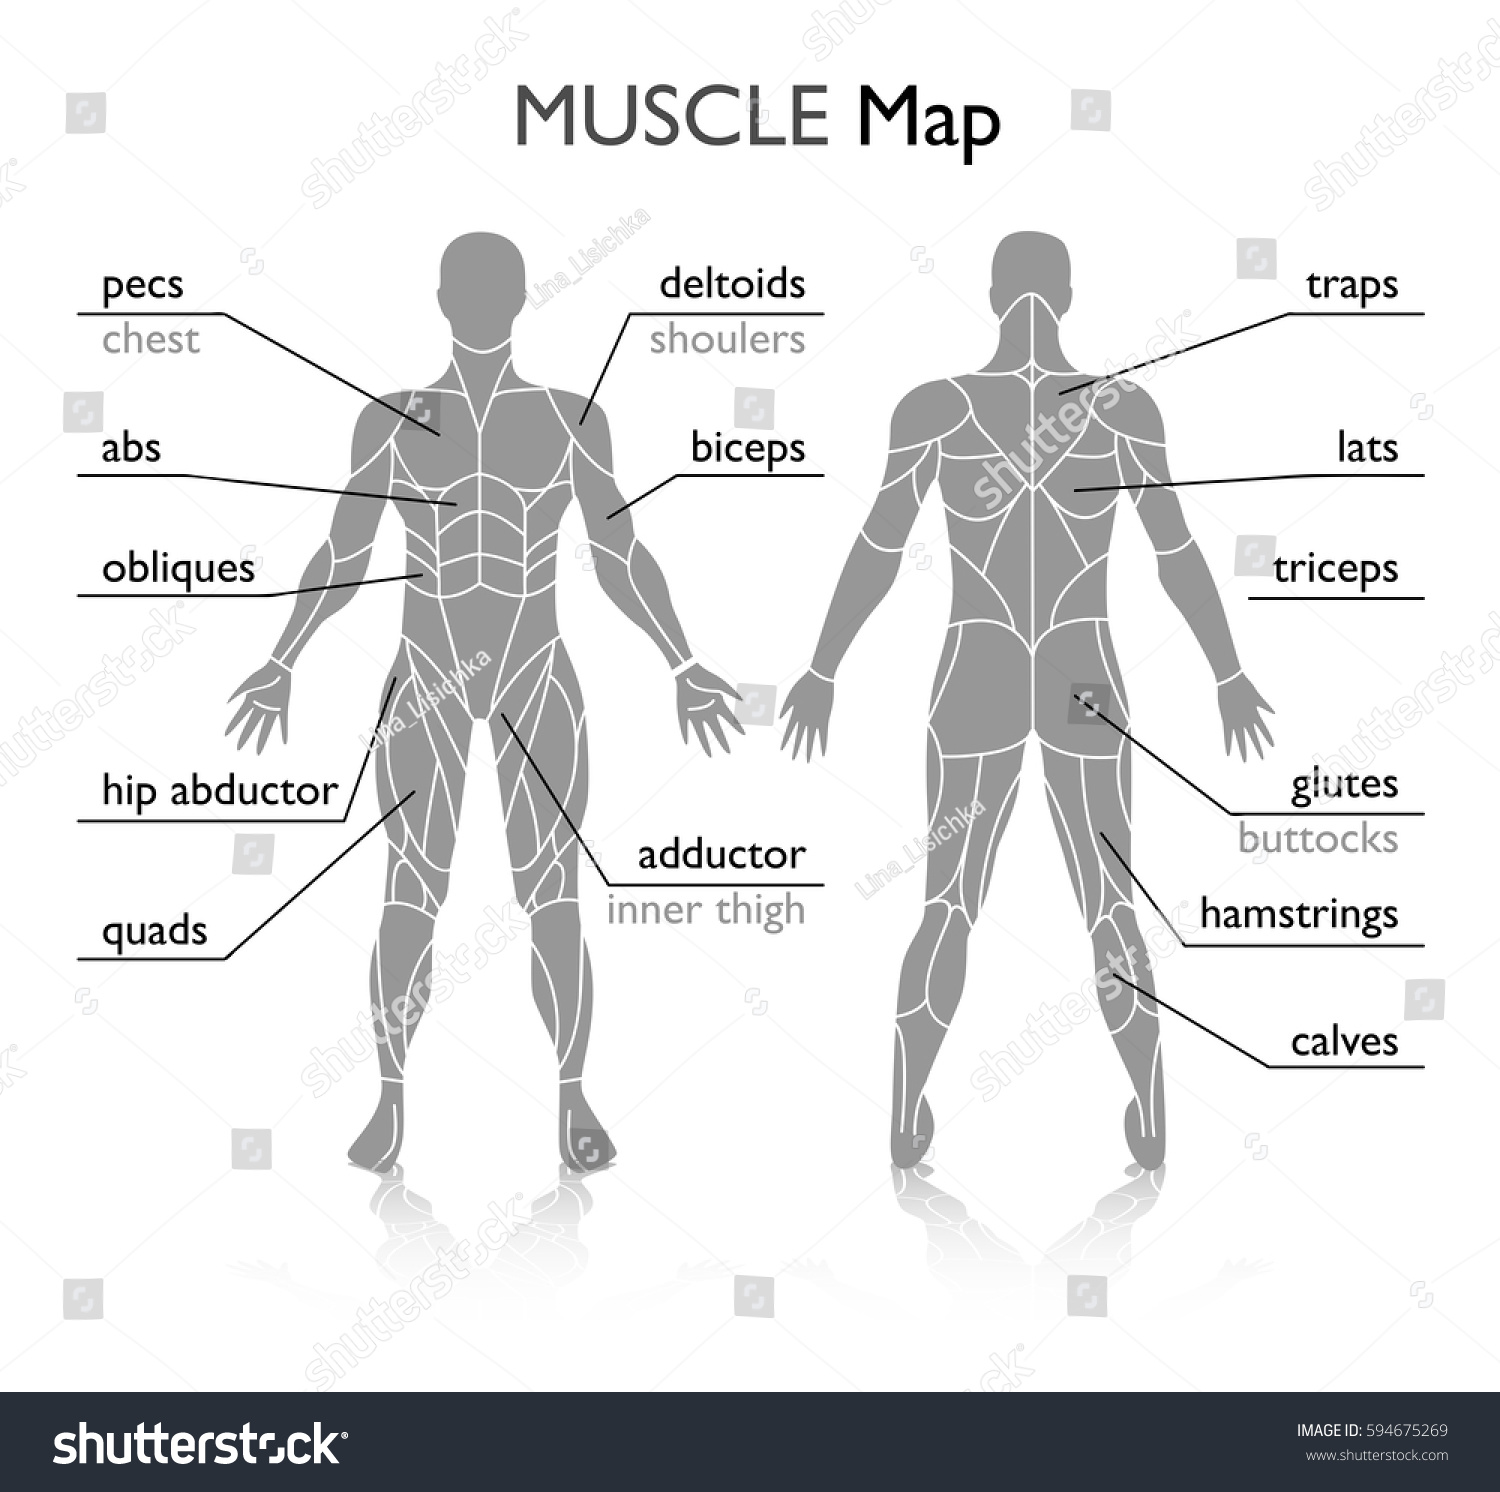 Muscles Body Vector Stock Vector Royalty Free 594675269 Shutterstock